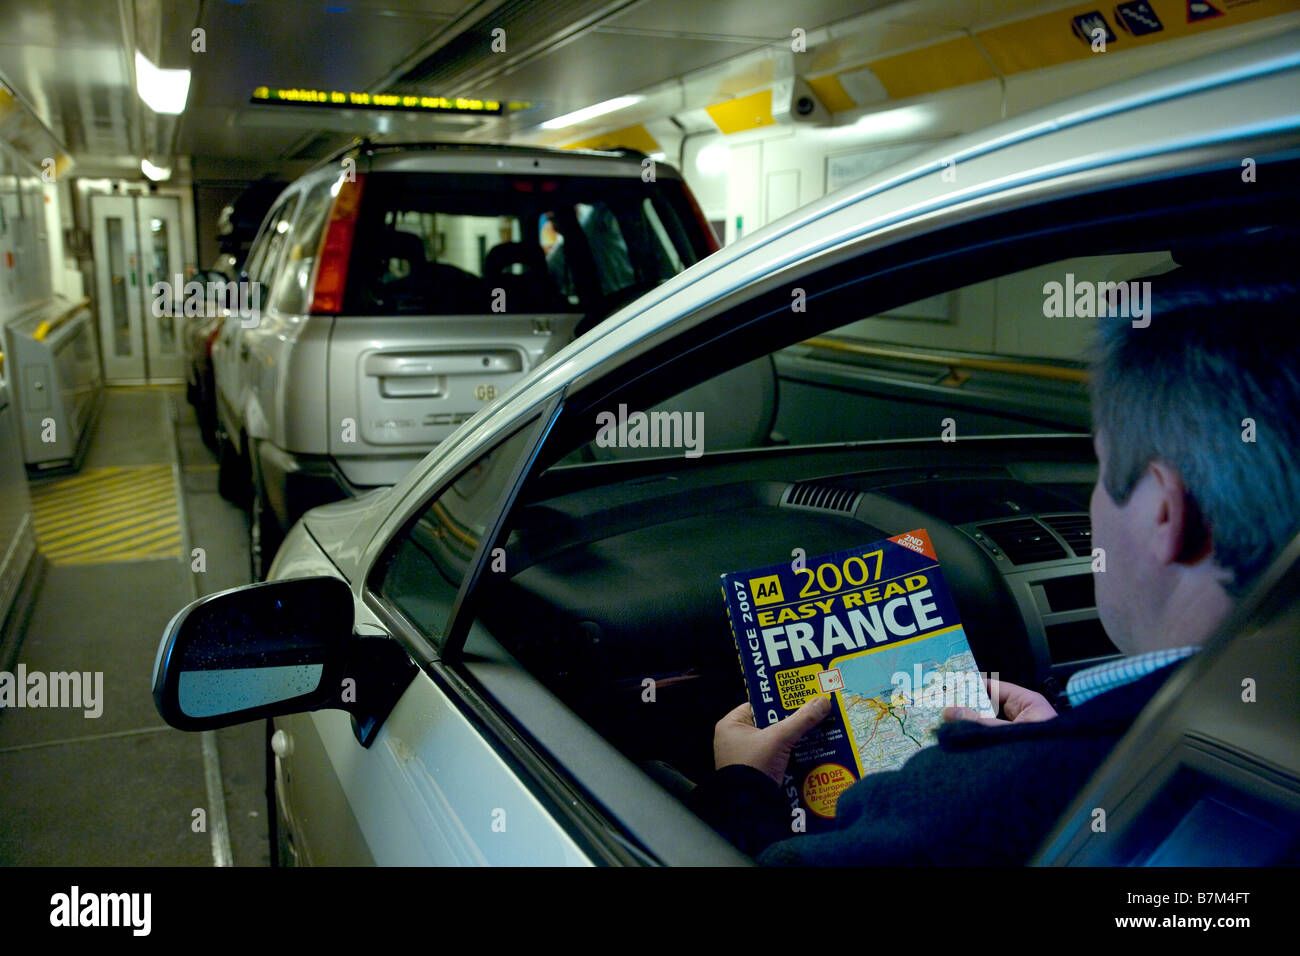 cars inside channel tunnel train with man looking at france road stock photo 21955580 alamy. Black Bedroom Furniture Sets. Home Design Ideas